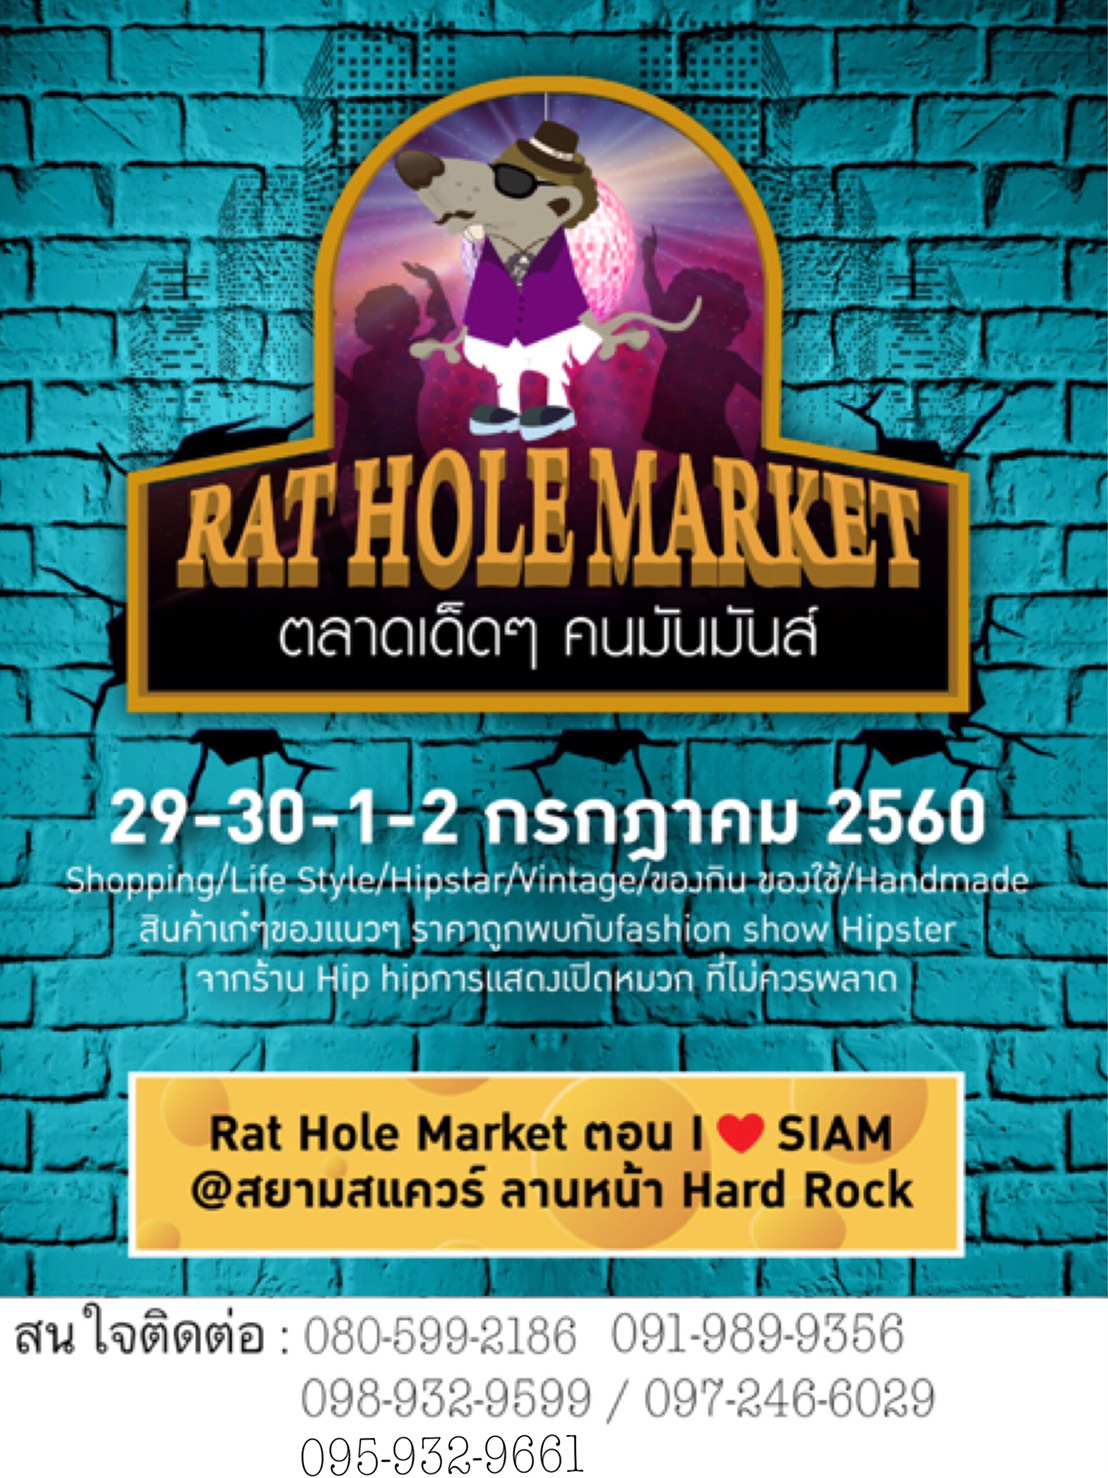 Rat Hole Market